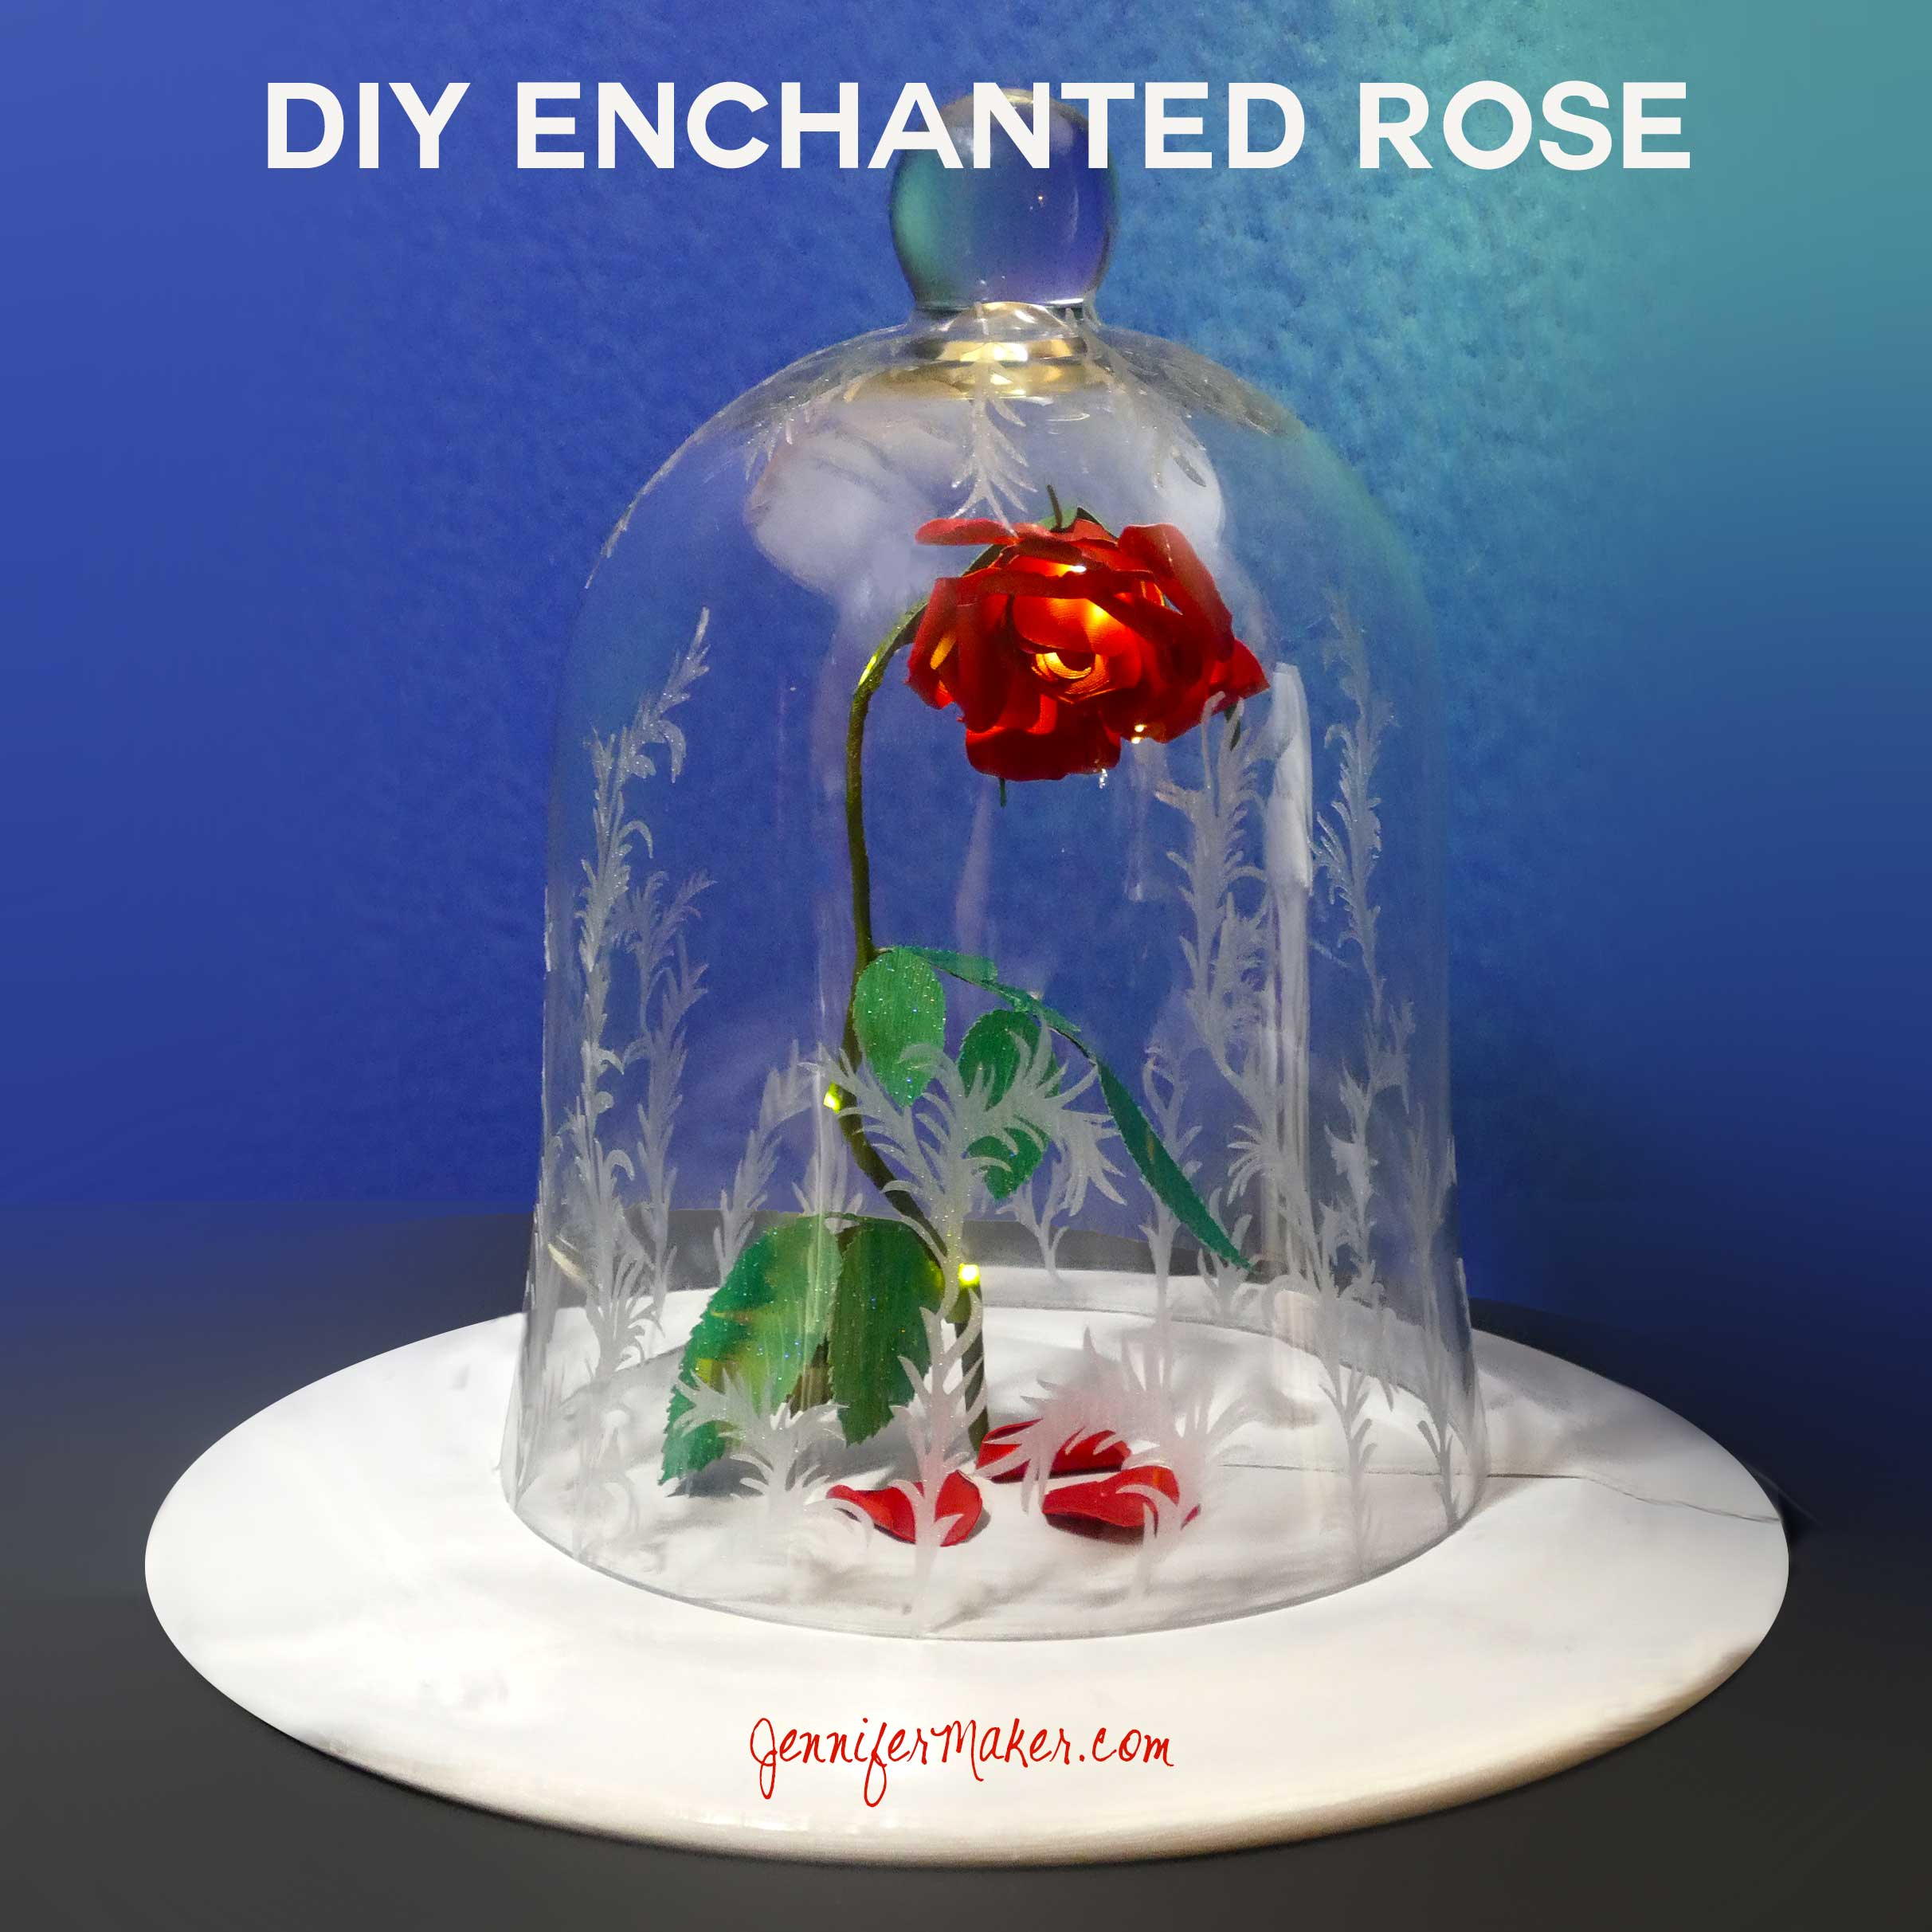 Diy Beauty The Beast Rose Jar Its Enchanted Jennifer Maker Flower Diagram Origami Disneys Decorated Bell Cloche Jennifermaker